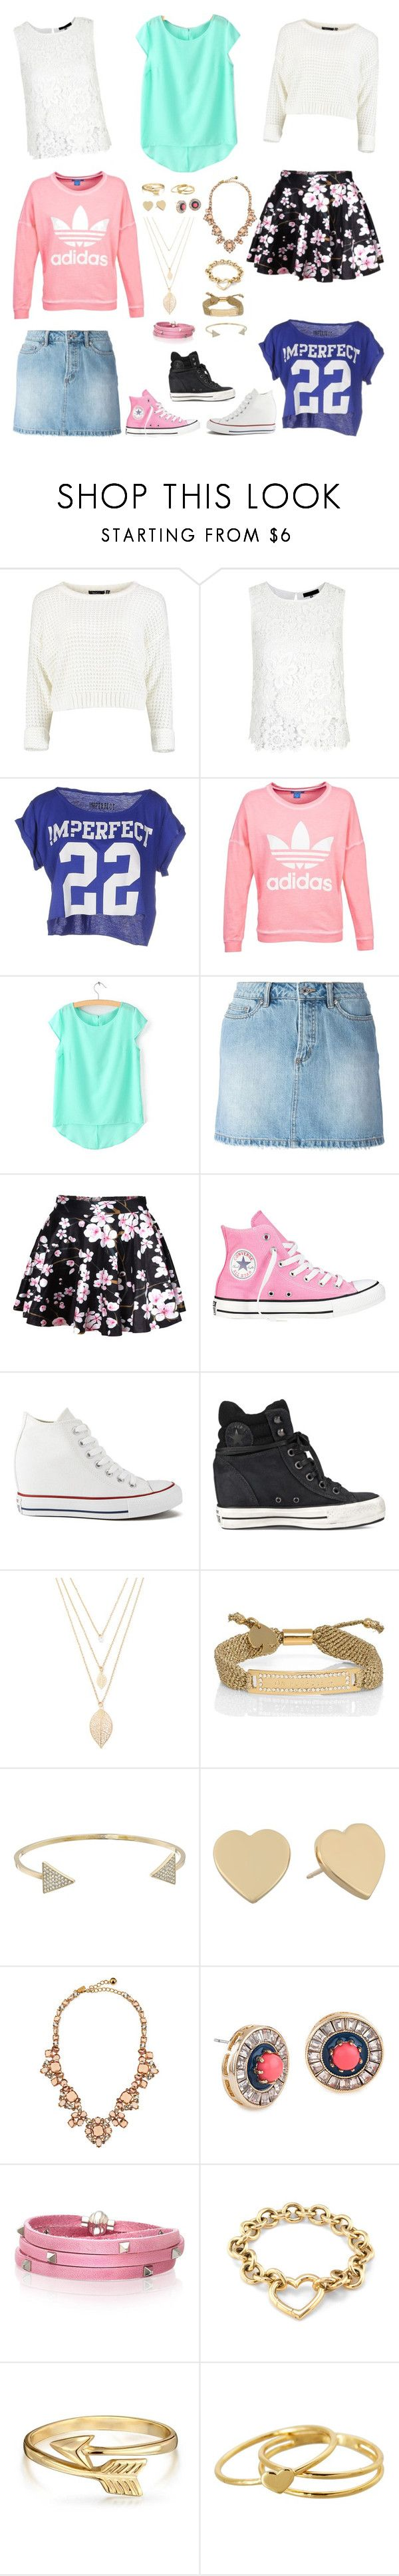 """Bella And The Bulldogs - Bella Inspired Outfits"" by verostyle16 ❤ liked on Polyvore featuring !M?ERFECT, adidas, Marc by Marc Jacobs, Converse, Forever 21, Kate Spade, Michael Kors, Lele Sadoughi, Sif Jakobs Jewellery and Tiffany & Co."